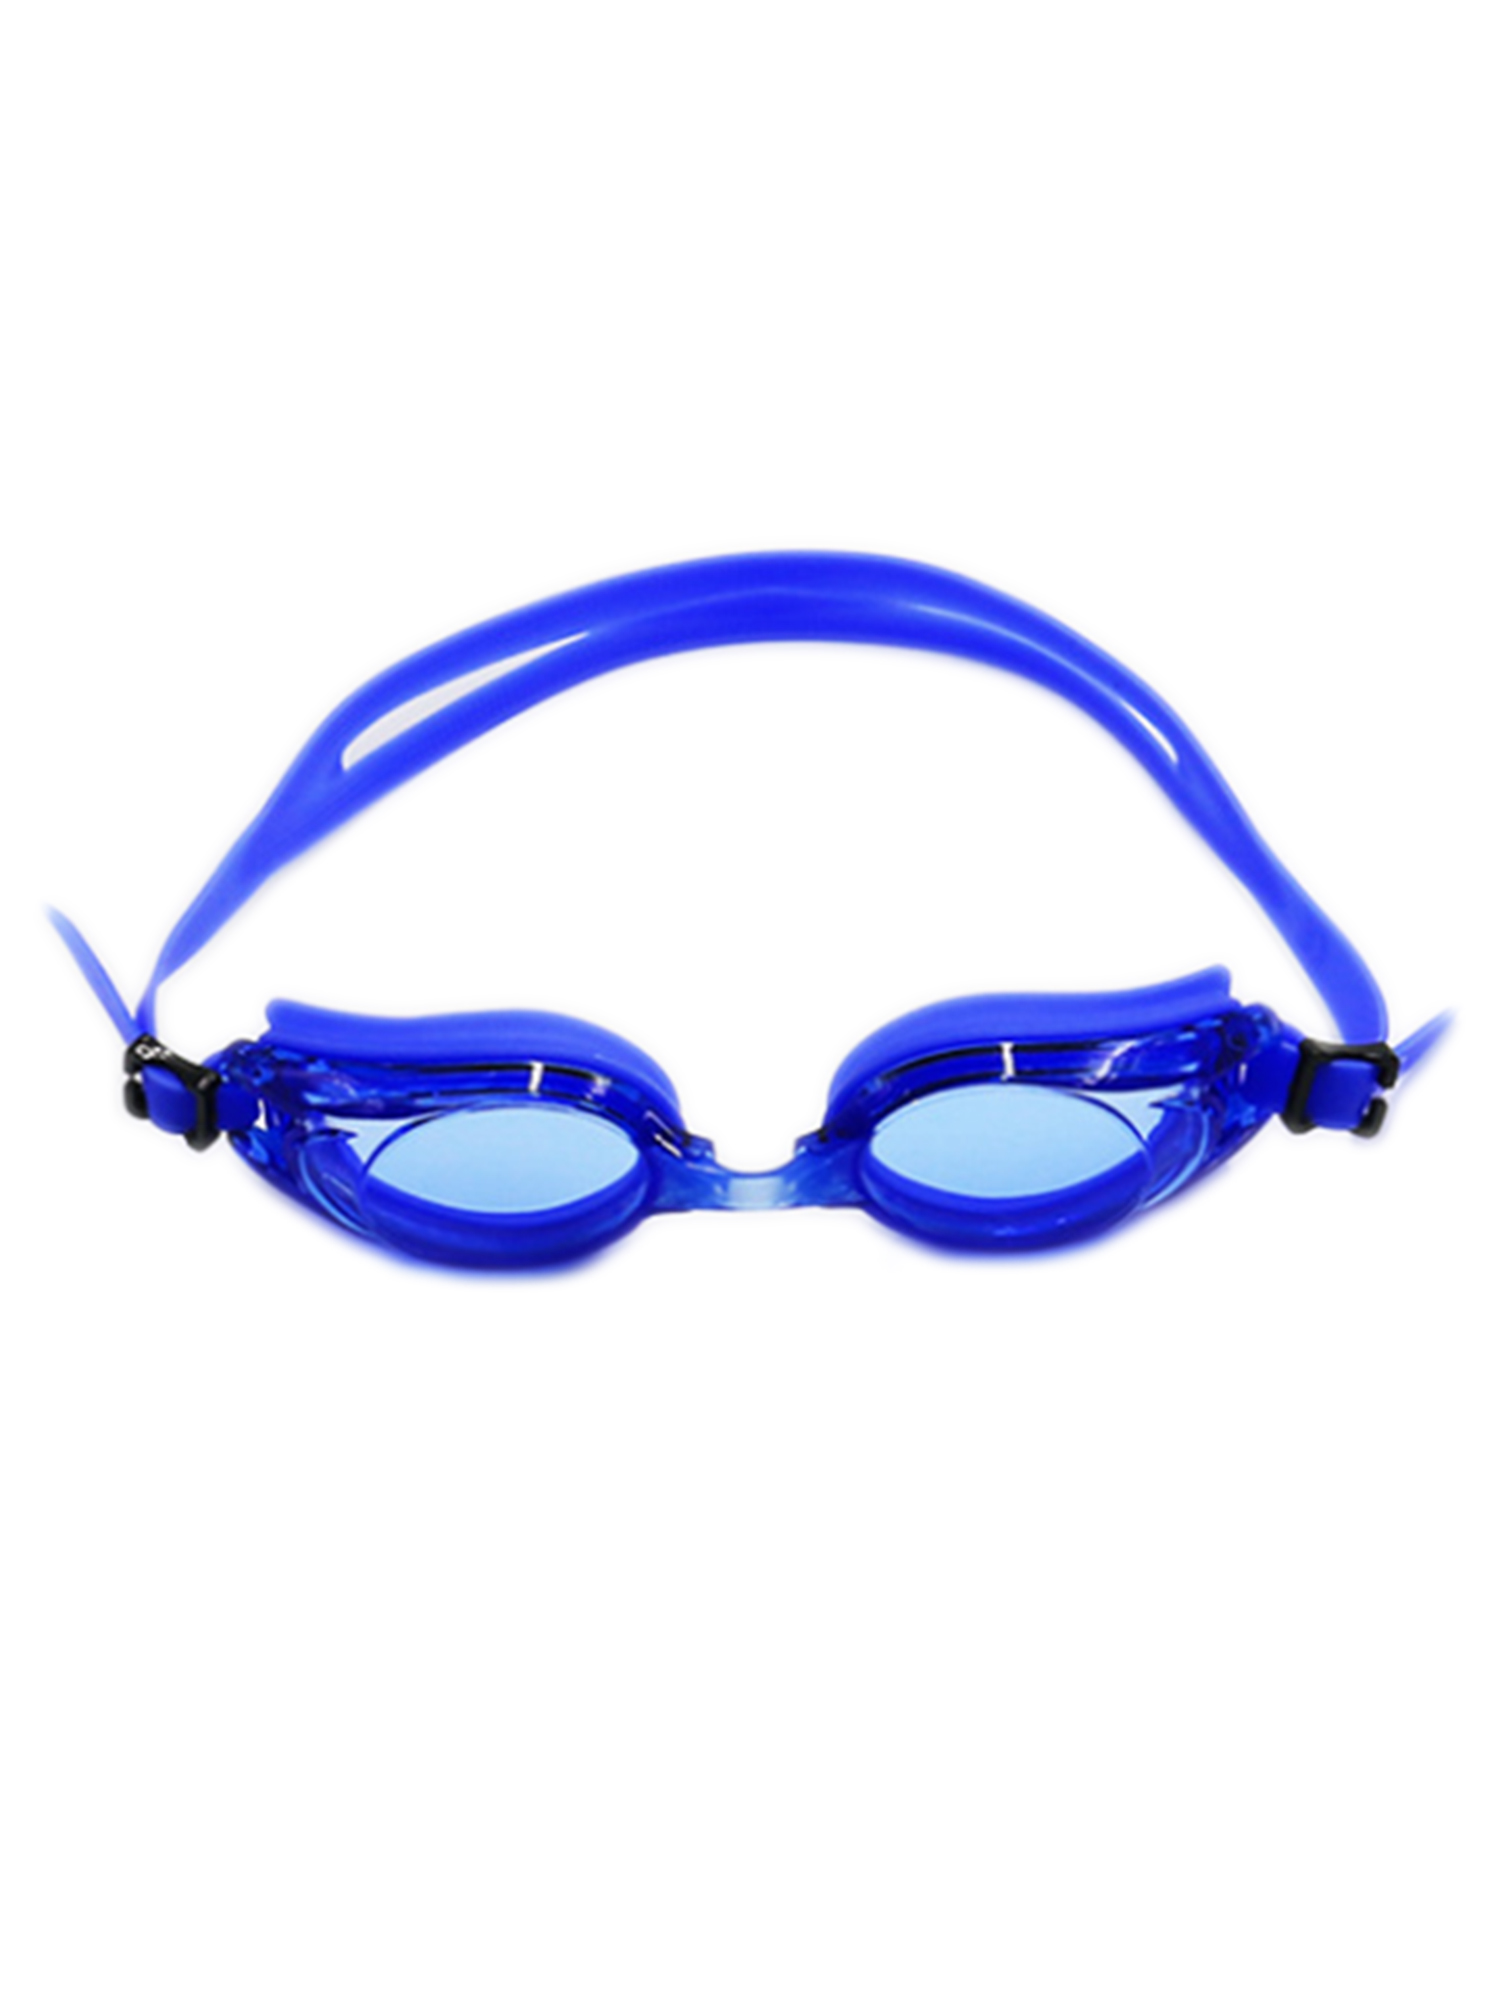 Anyprize Swimming Goggles for Adults, No Leaking Premium UV Protection Anti-Fog and 180 Degree Vision, Triathlon Goggles... by